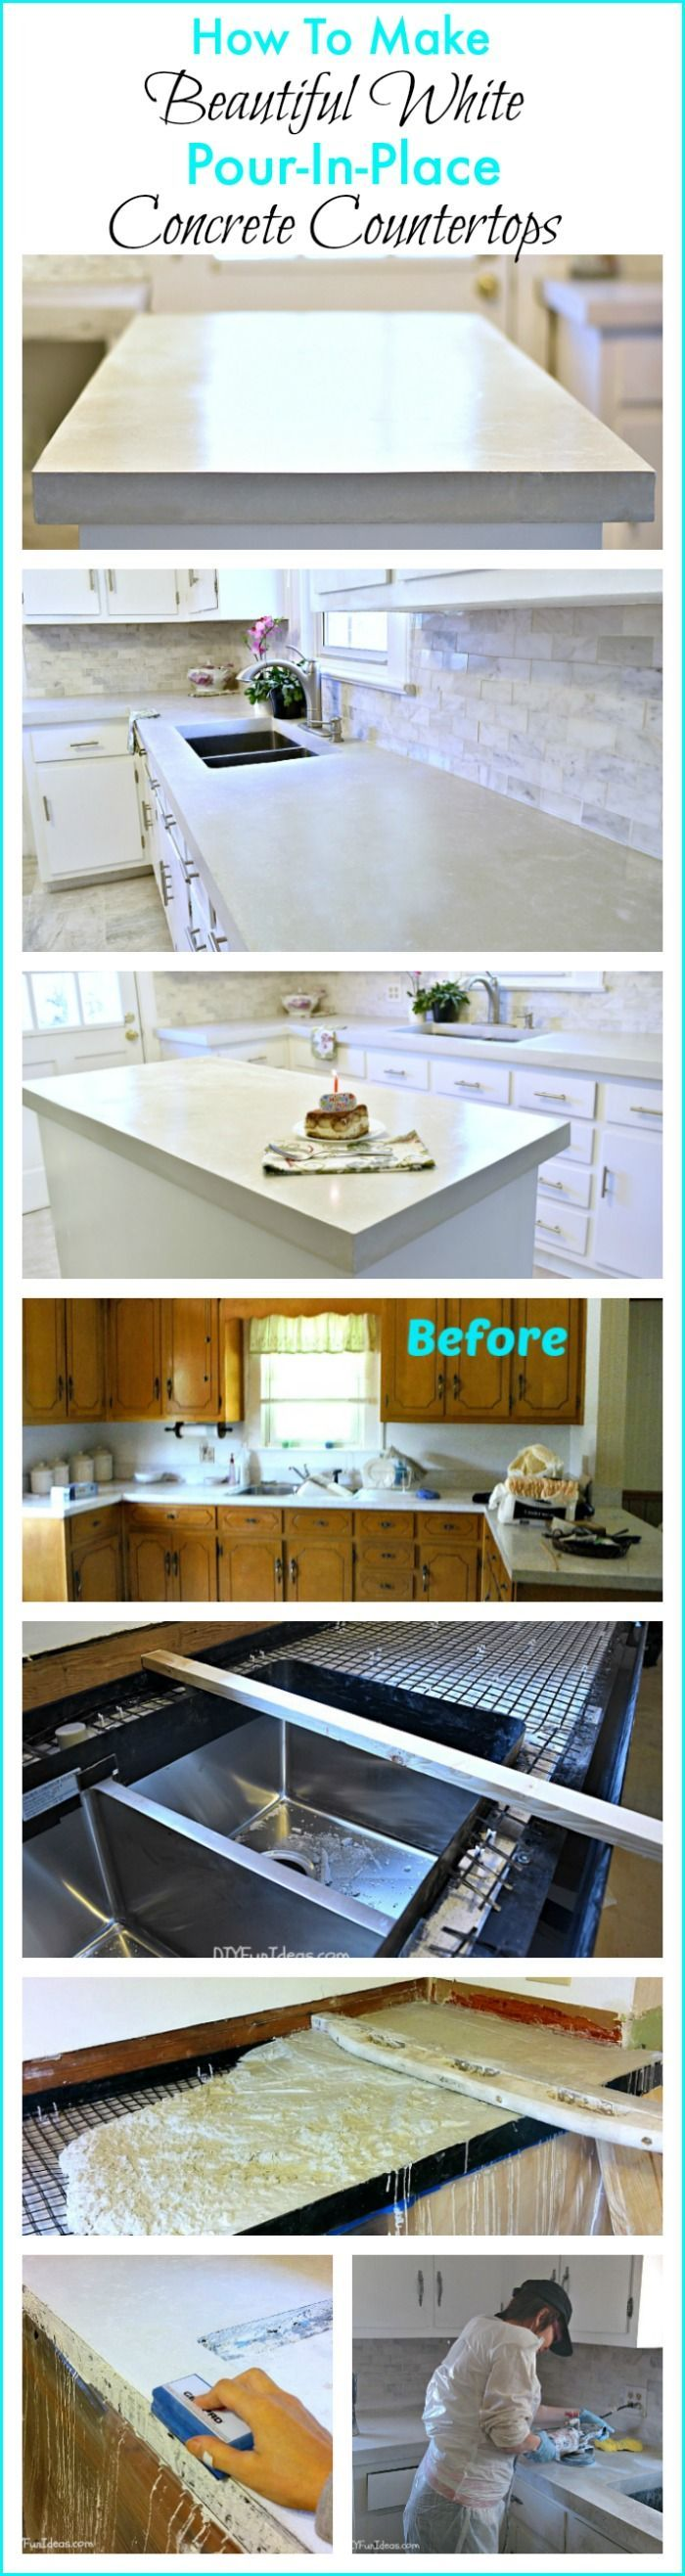 How to make beautiful white pourinplace concrete